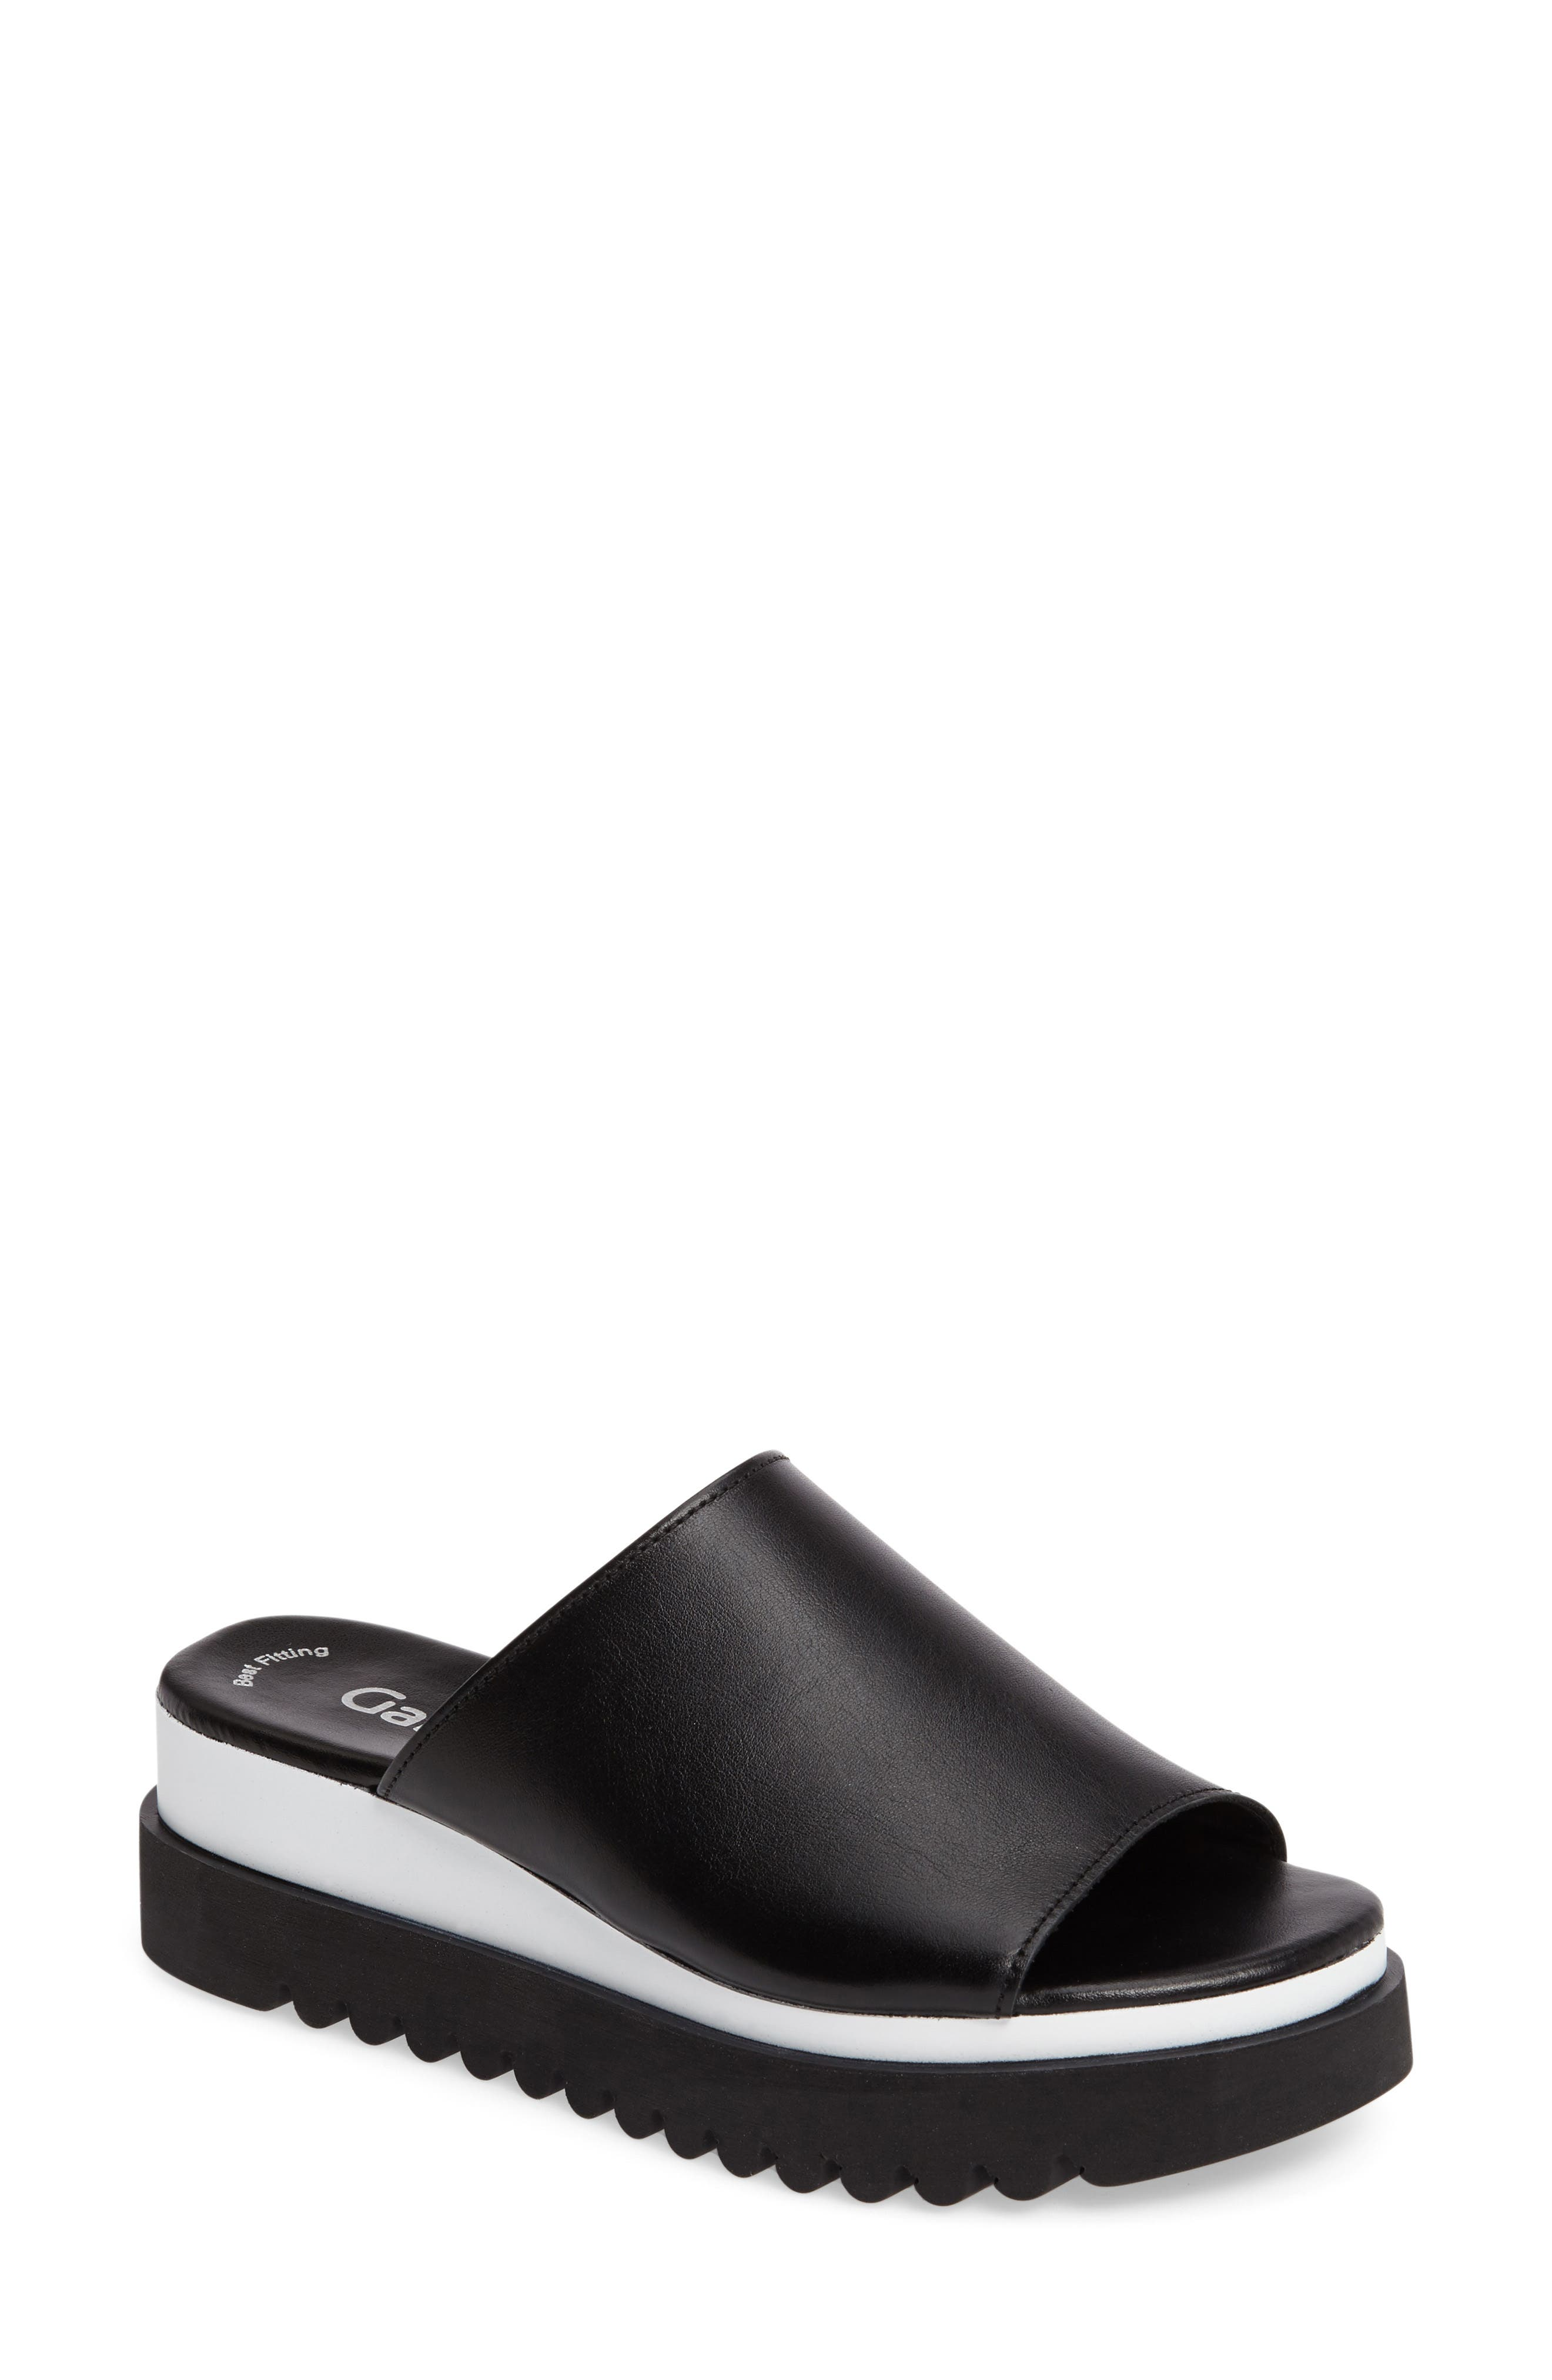 Gabor Slide Sandal (Women)